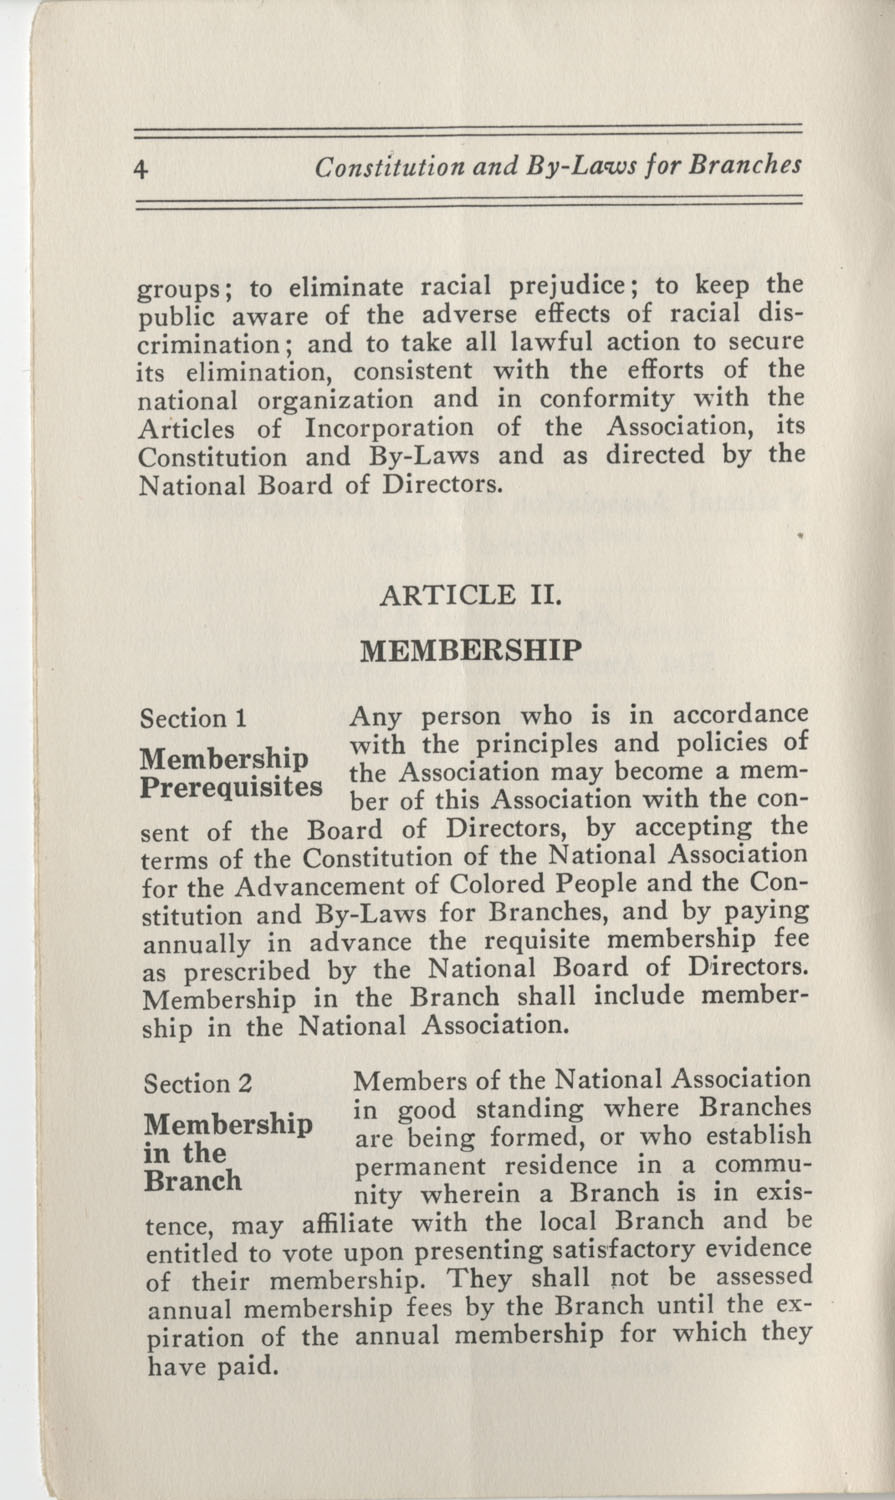 Constitutions and By-Laws, September 1960, Page 4